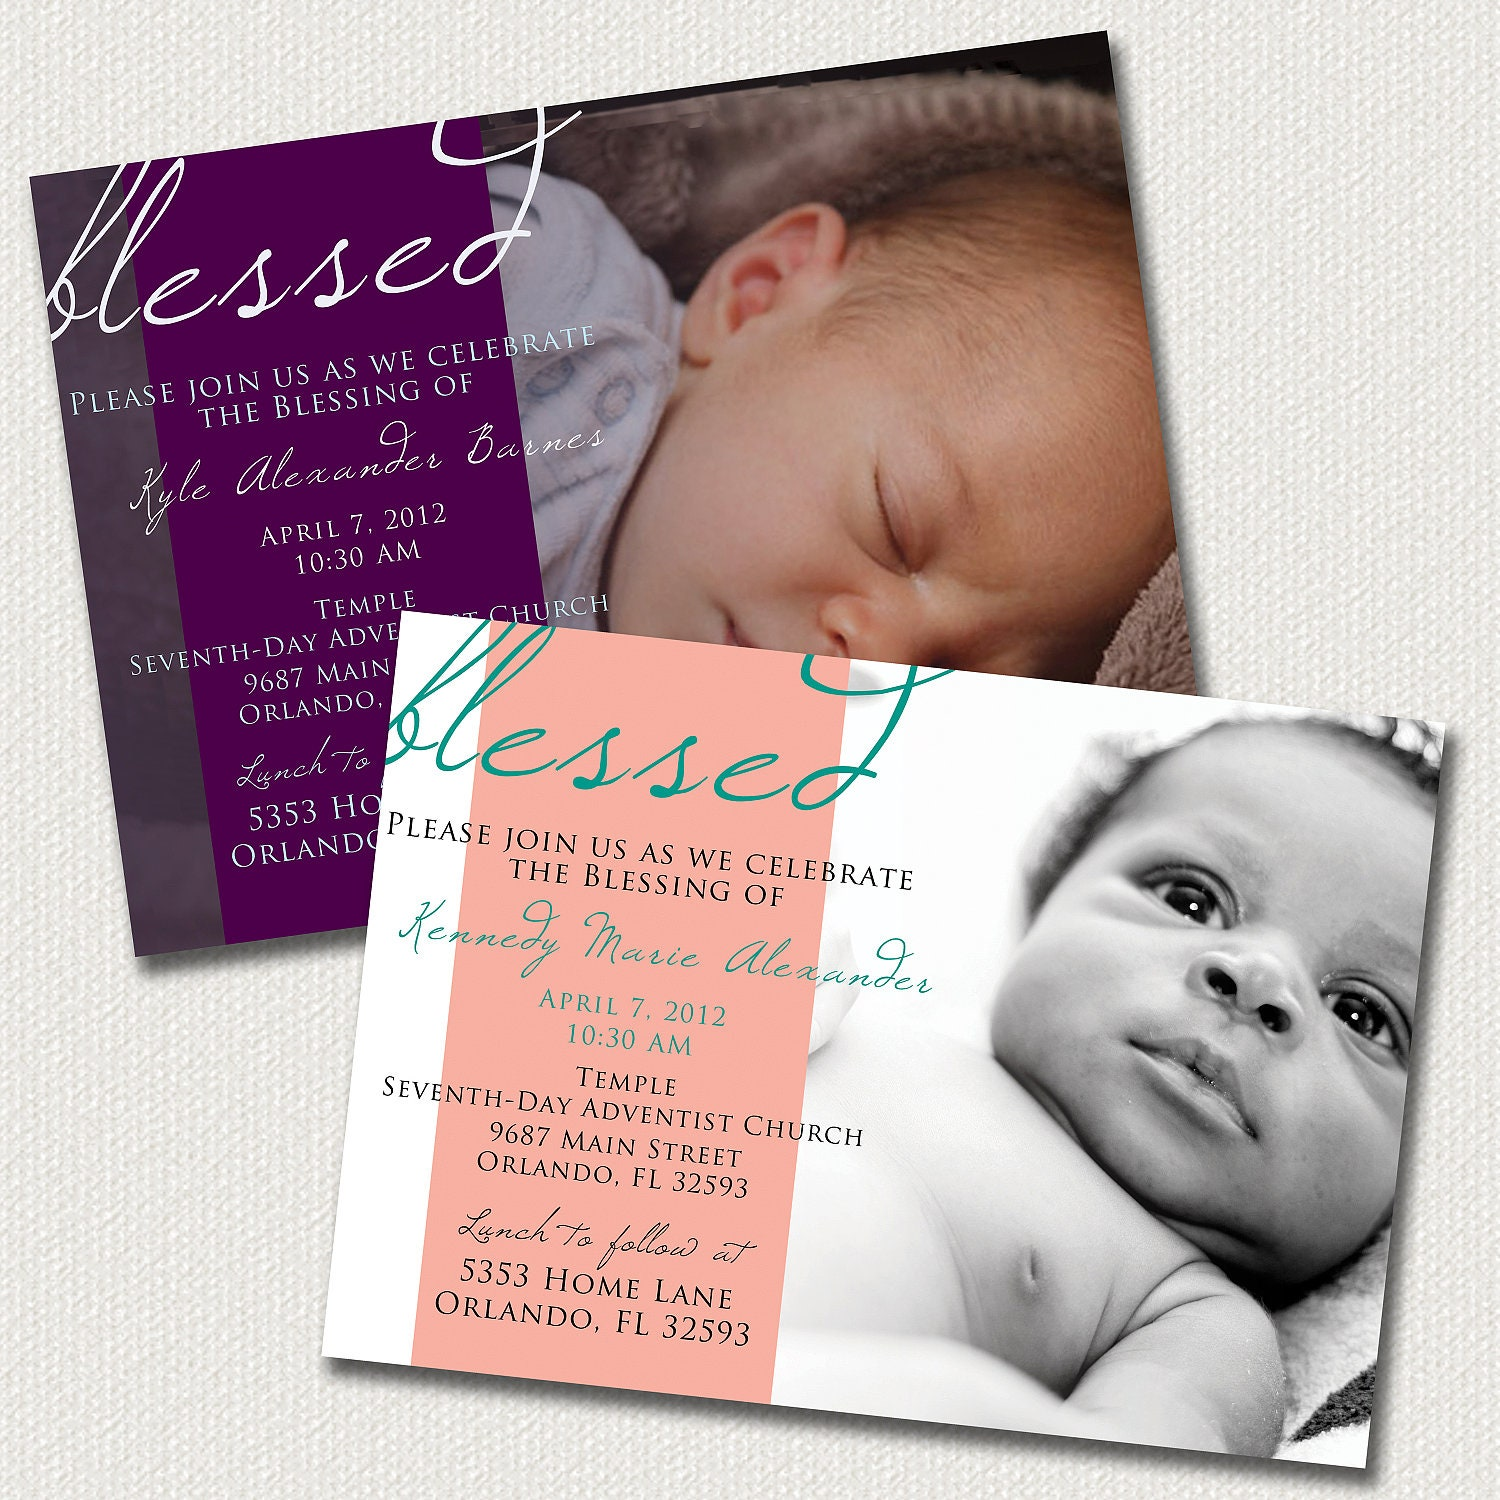 Child Dedication Invitation Message with luxury invitations example